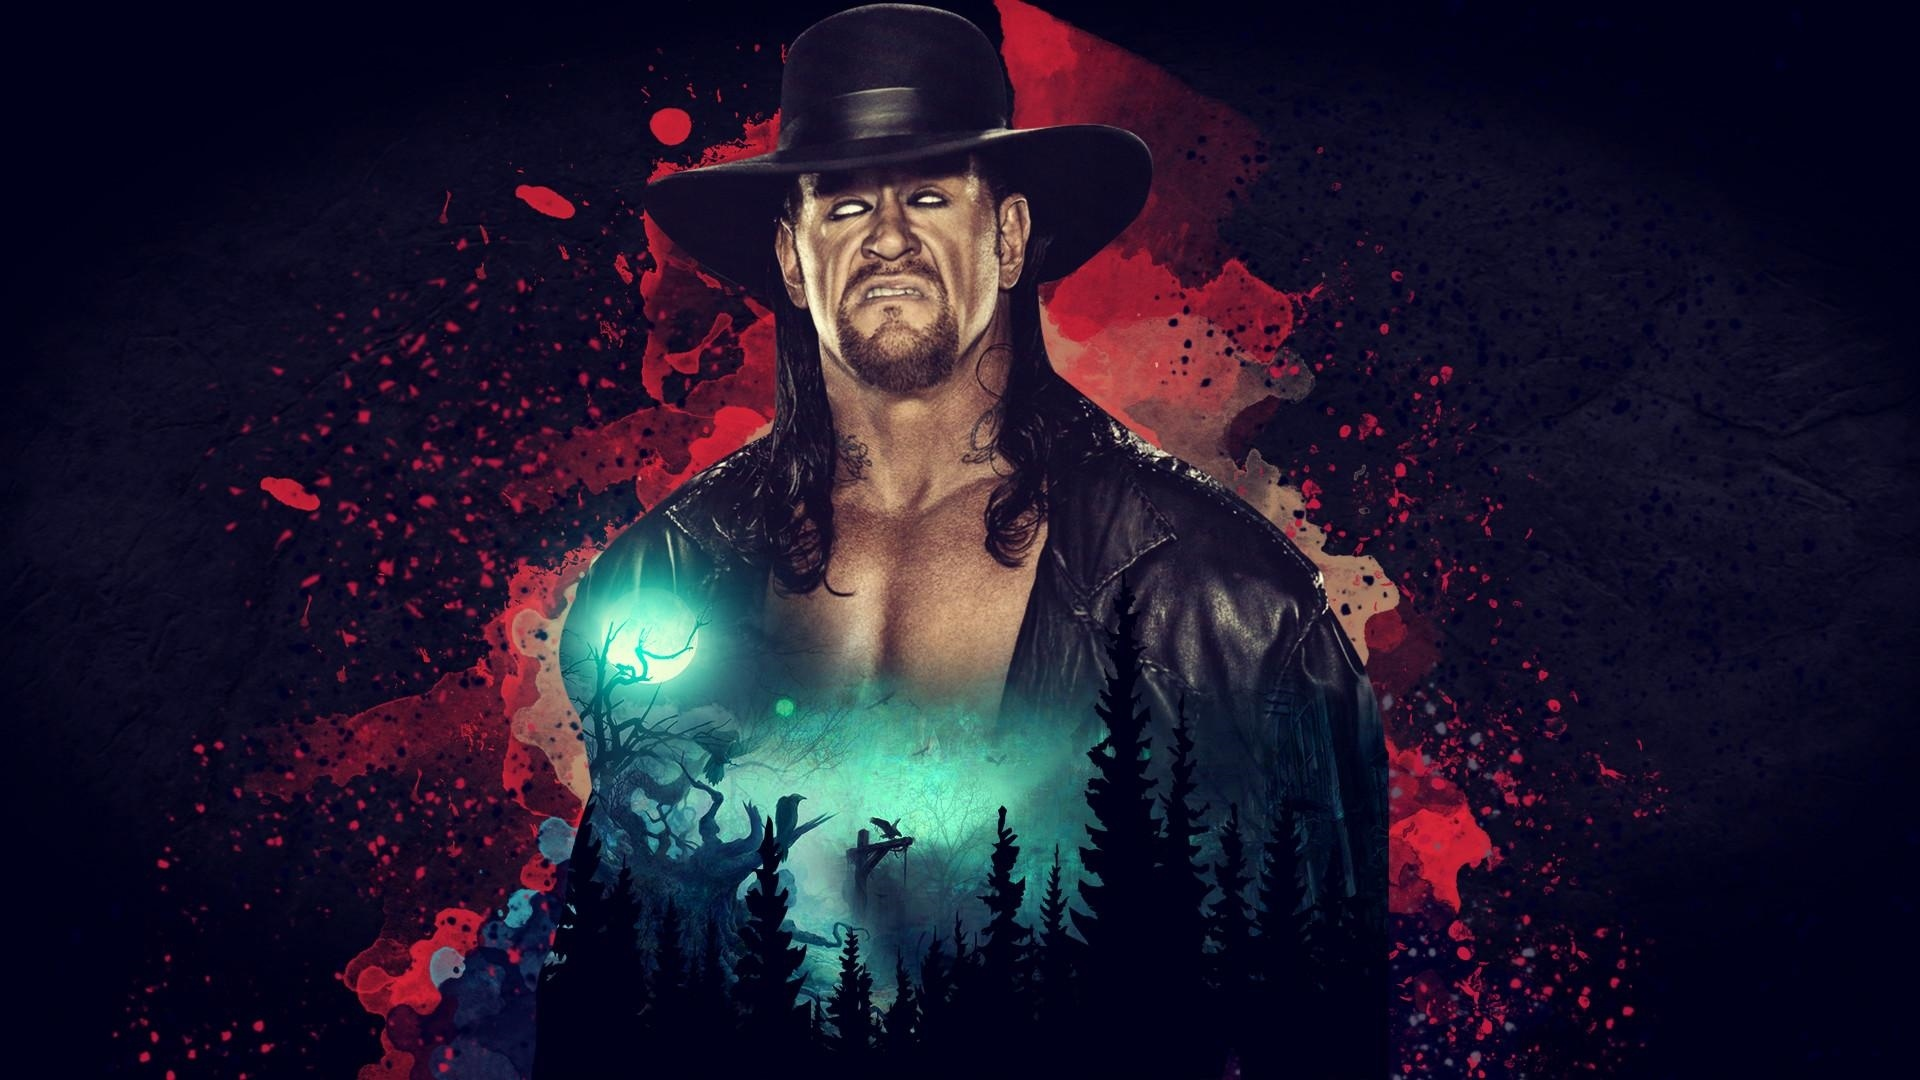 Undertaker windows wallpaper